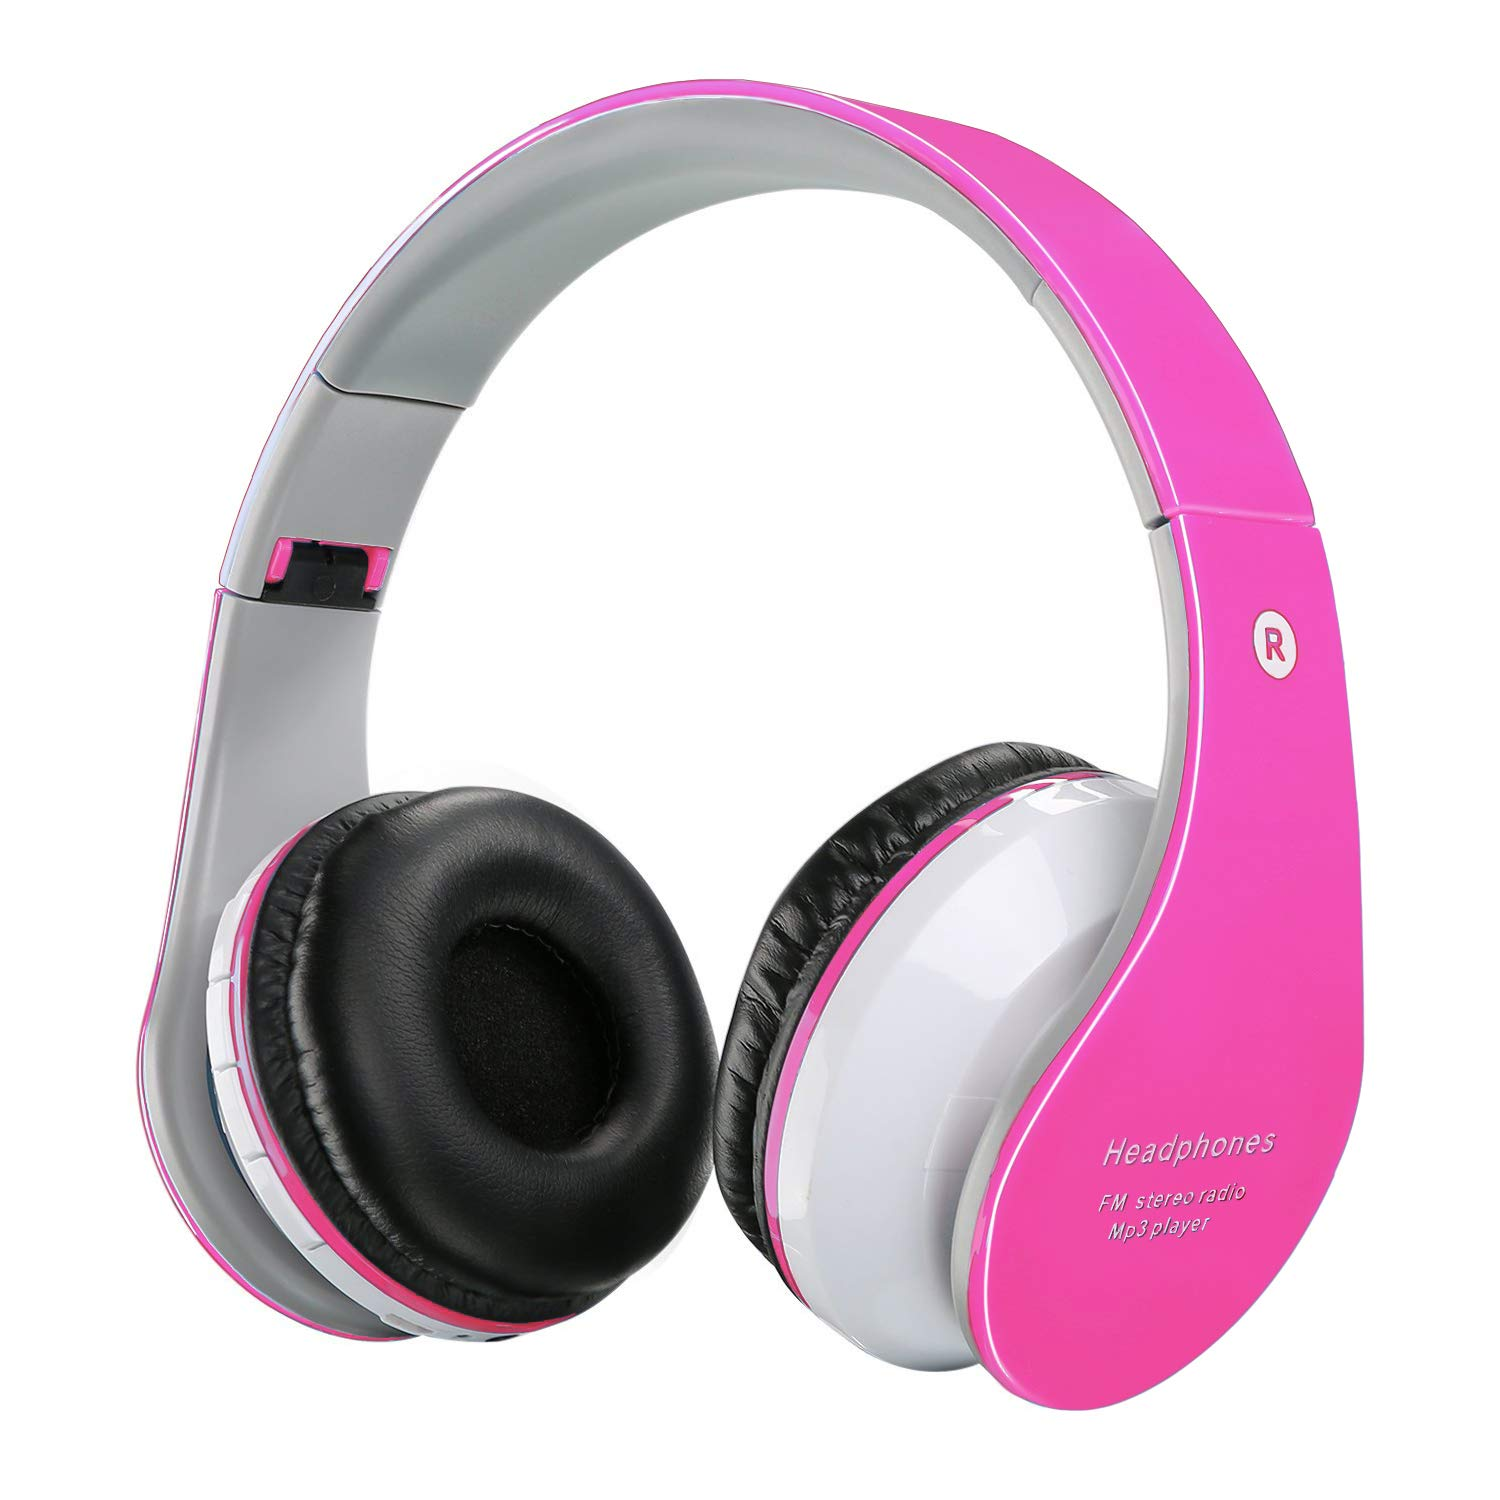 Kids Bluetooth Headphones, Wireless/Wired Foldable Adjustable Lightweight Headset with Mic, Noise Reduction Cancelling, For Phones Computer For Children/Boy / Girl/Teen / Family - Pink